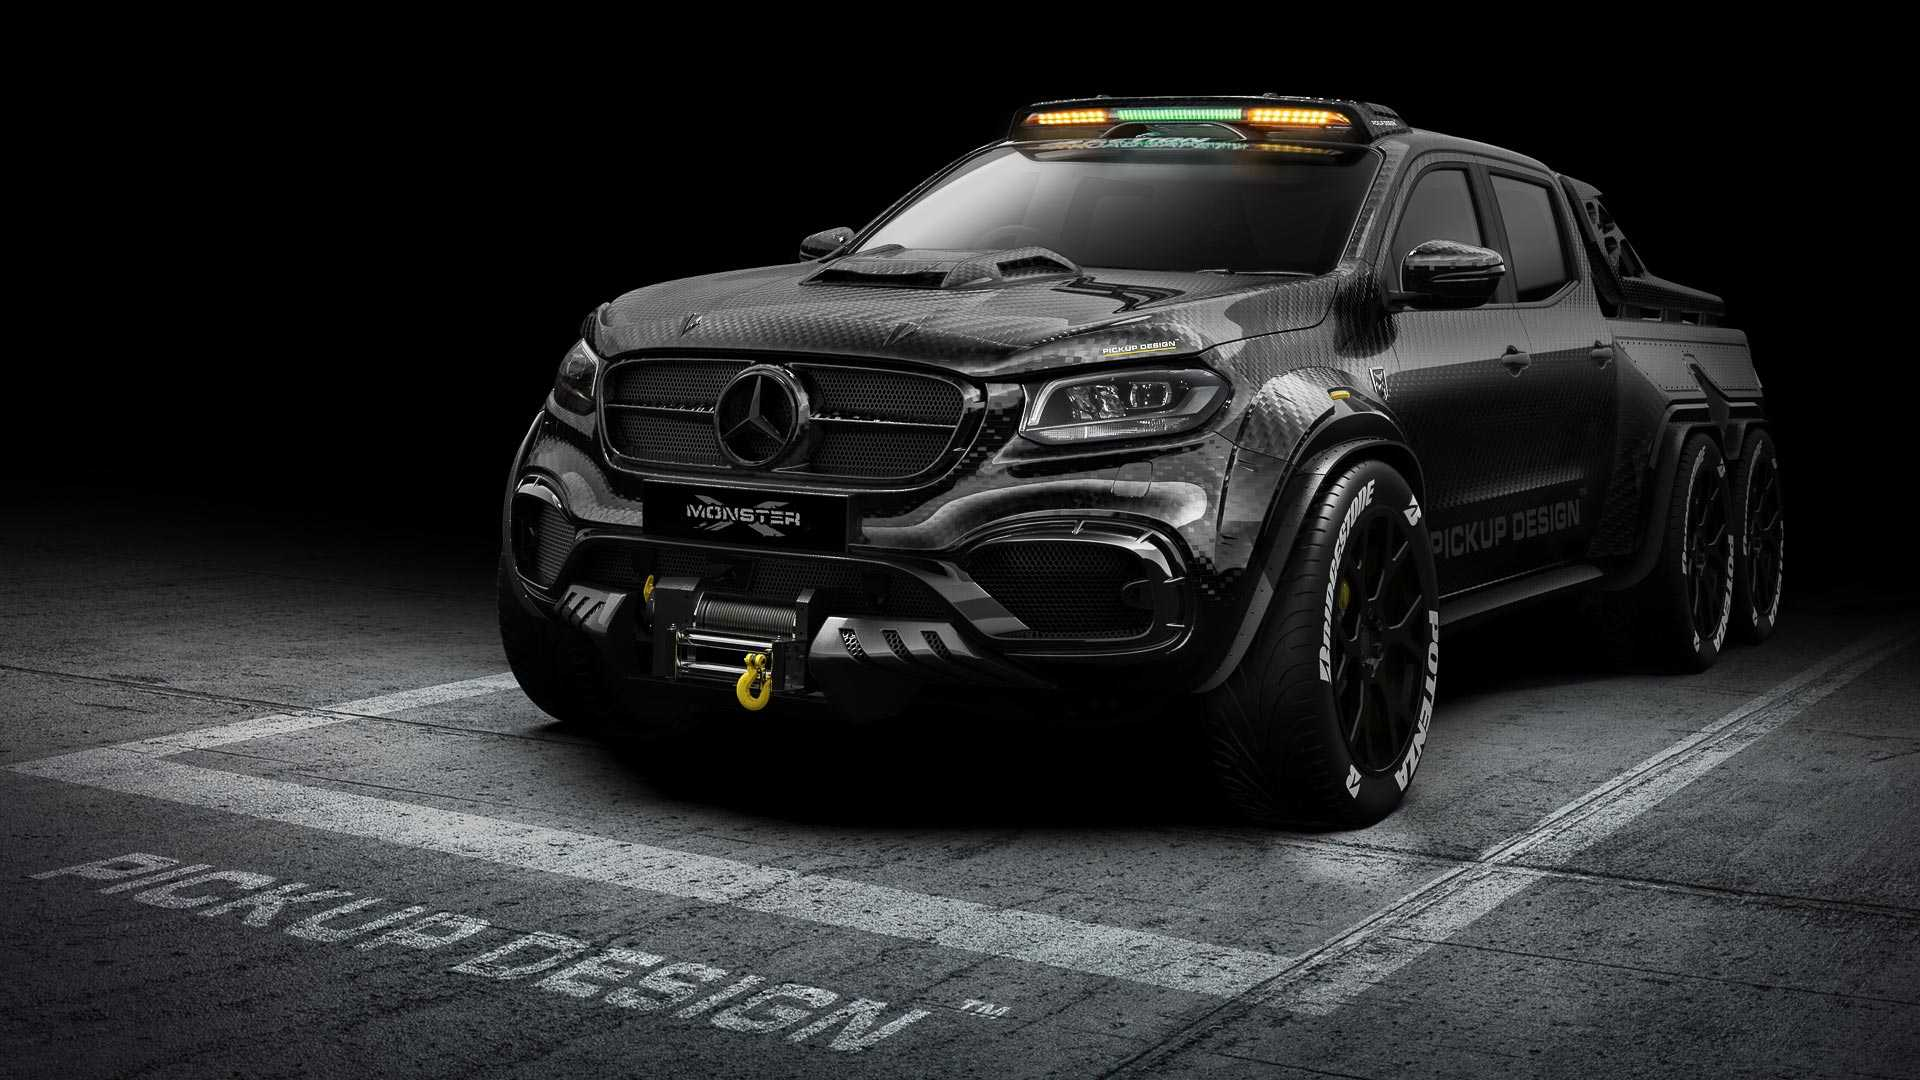 Mercedes X-Class Exy Monster X Concept by Pickup Design (2)